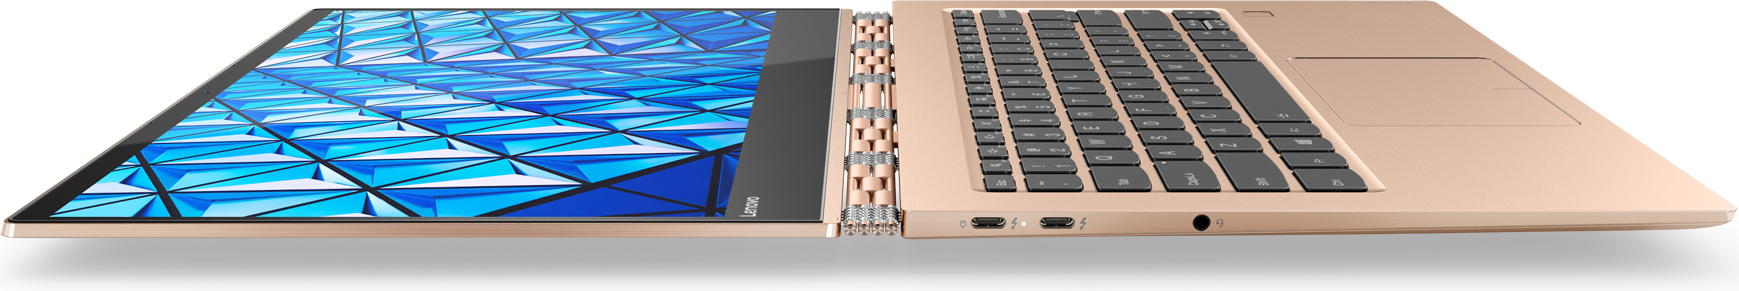 By Contrast The Yoga 910 Came In Silver Gold And Dark Grey Which Manufacturer Called Gunmetal